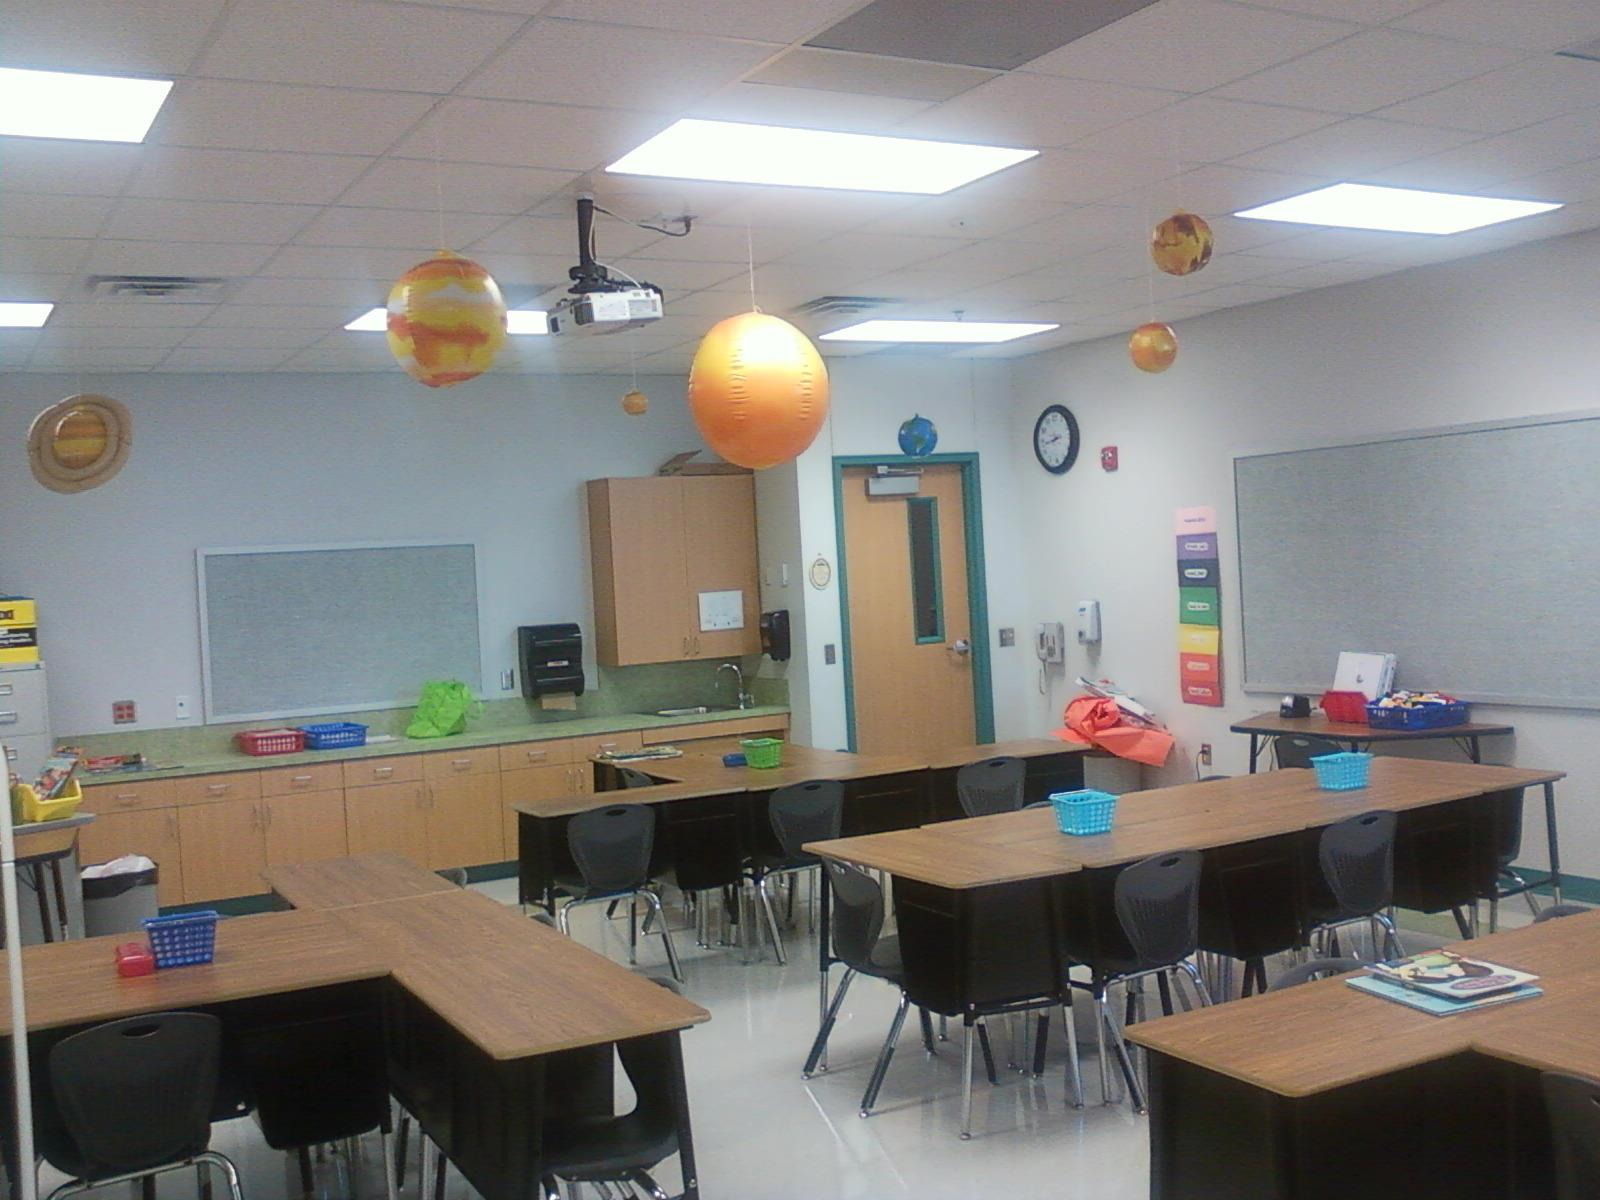 Collaborative Classroom Seating : Step into nd mrs hensley s classroom layout